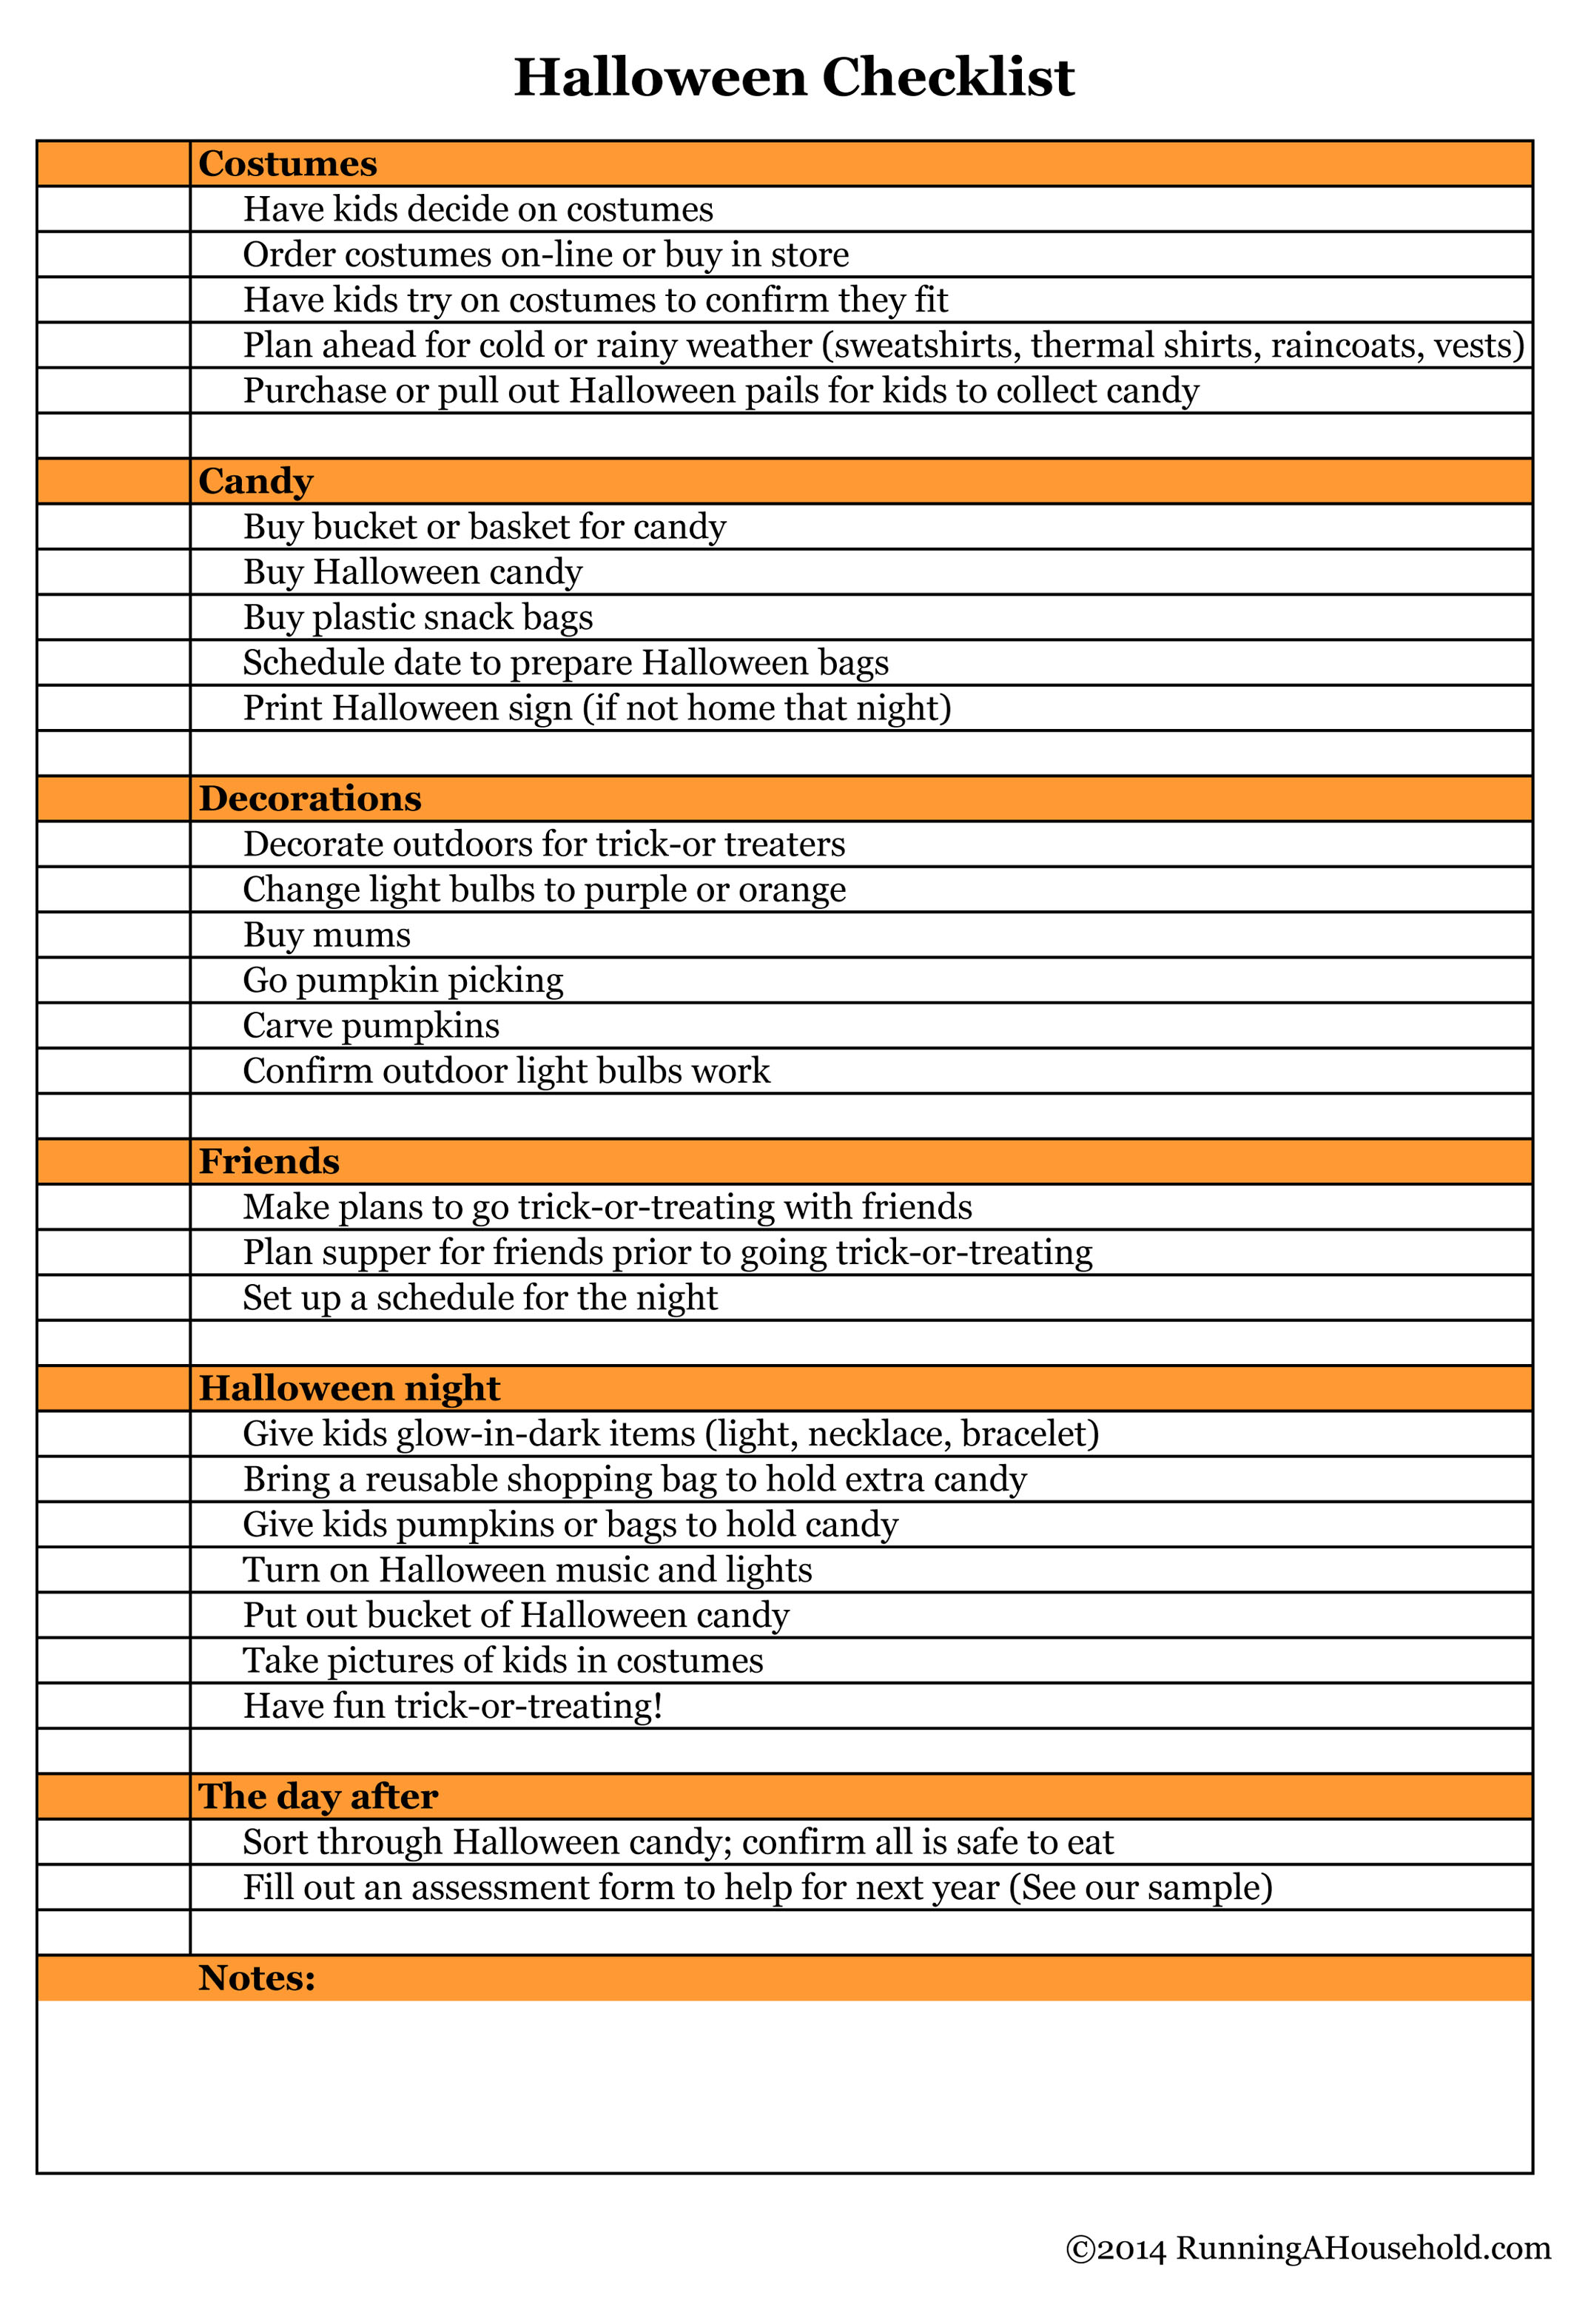 Halloween Checklist You Can't Miss - Running A Household